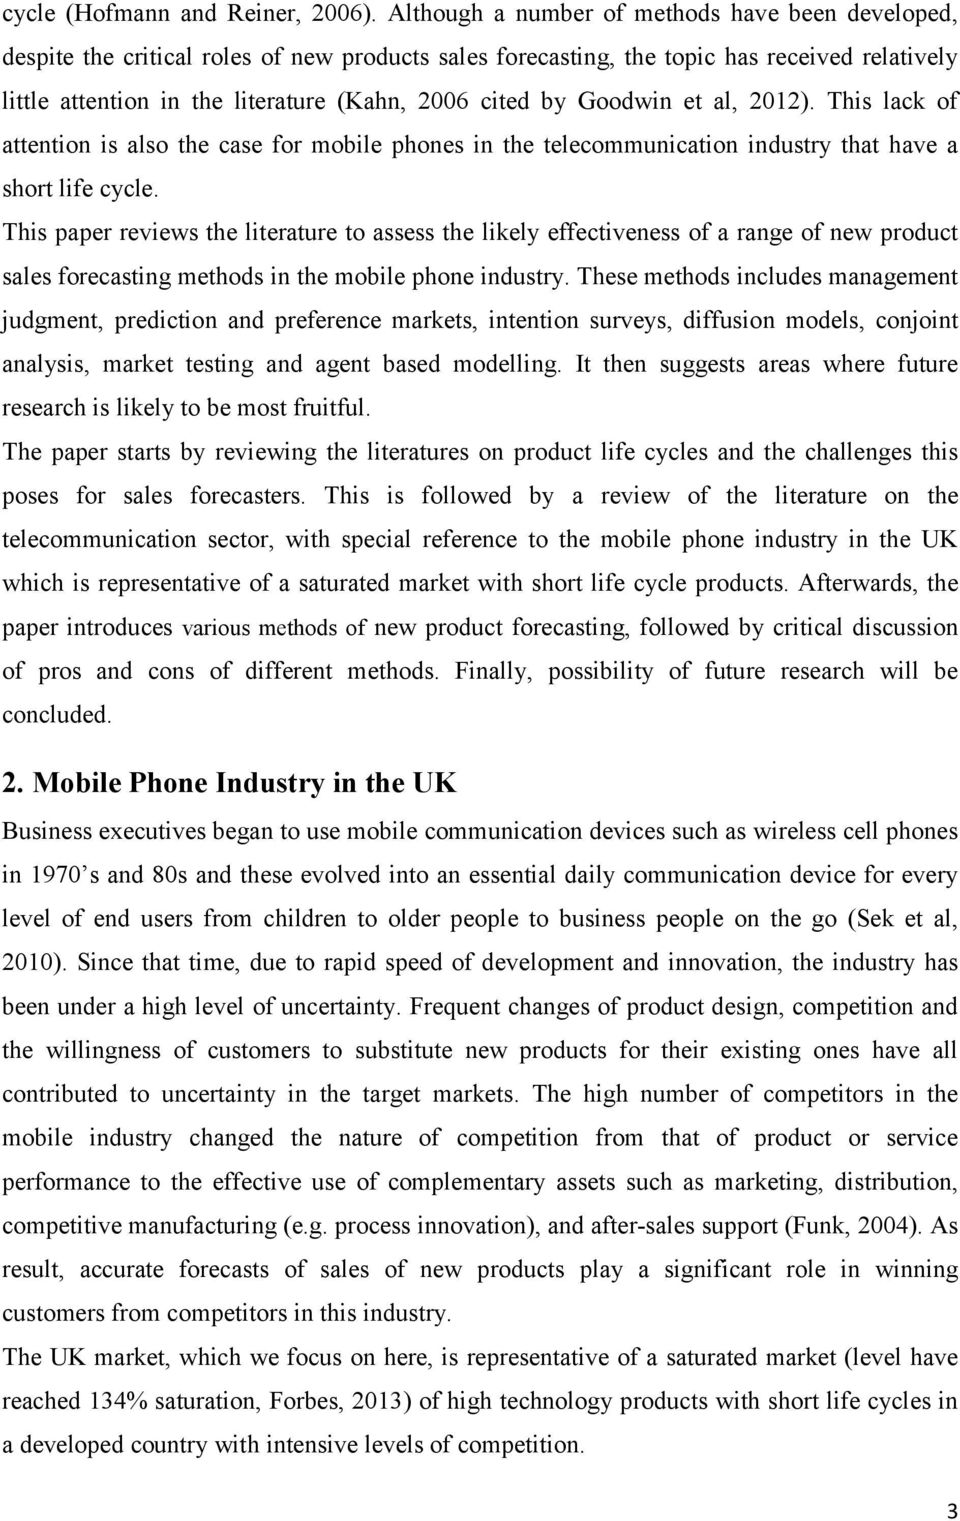 by Goodwin et al, 2012). This lack of attention is also the case for mobile phones in the telecommunication industry that have a short life cycle.